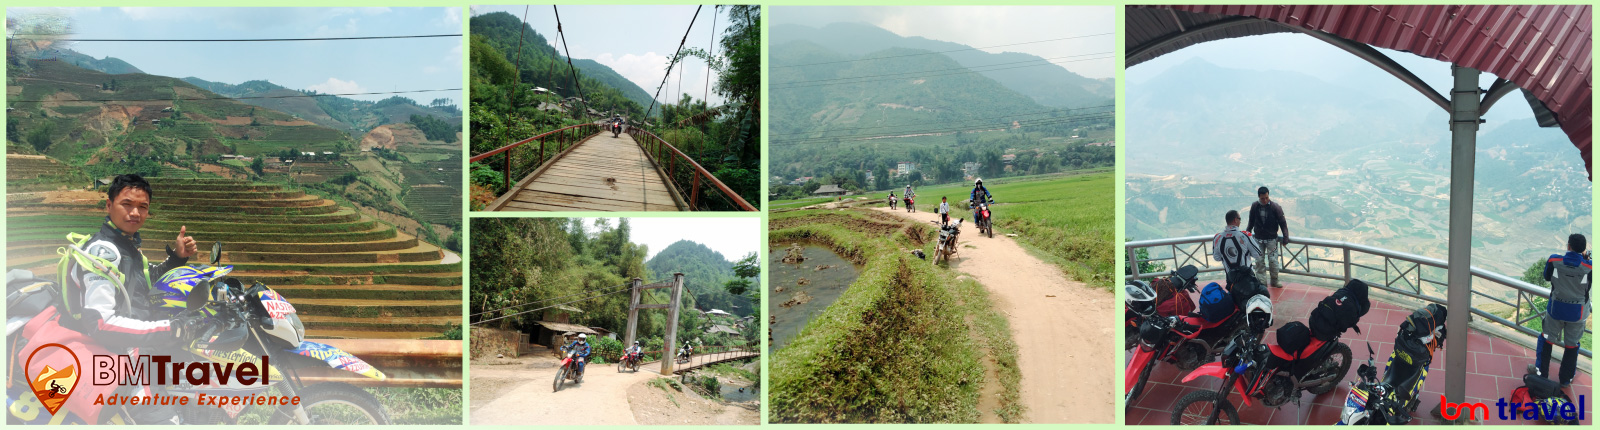 Vietnam motorbike tours via northern loop trail -10 days. Day 2